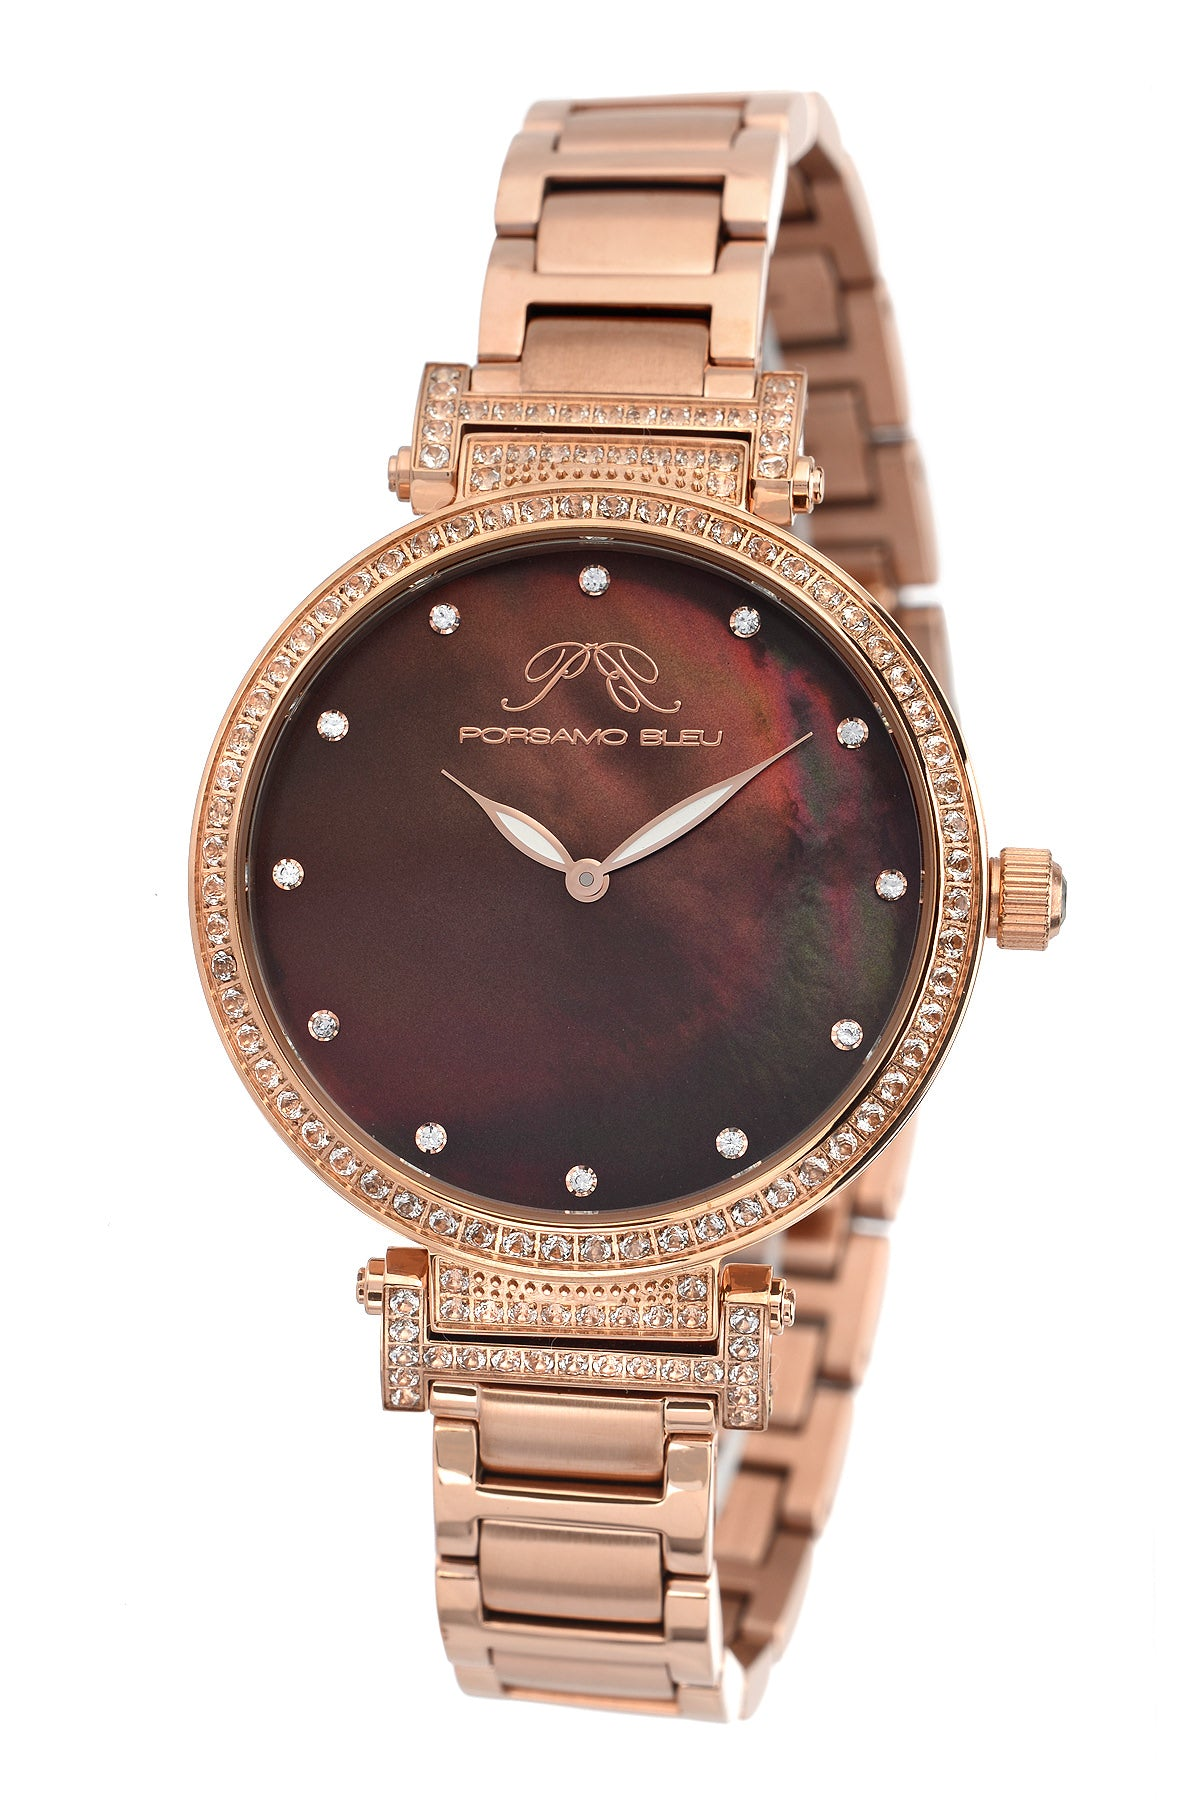 Porsamo Bleu Chantal luxury topaz women's stainless steel watch, rose, brown 672CCHS